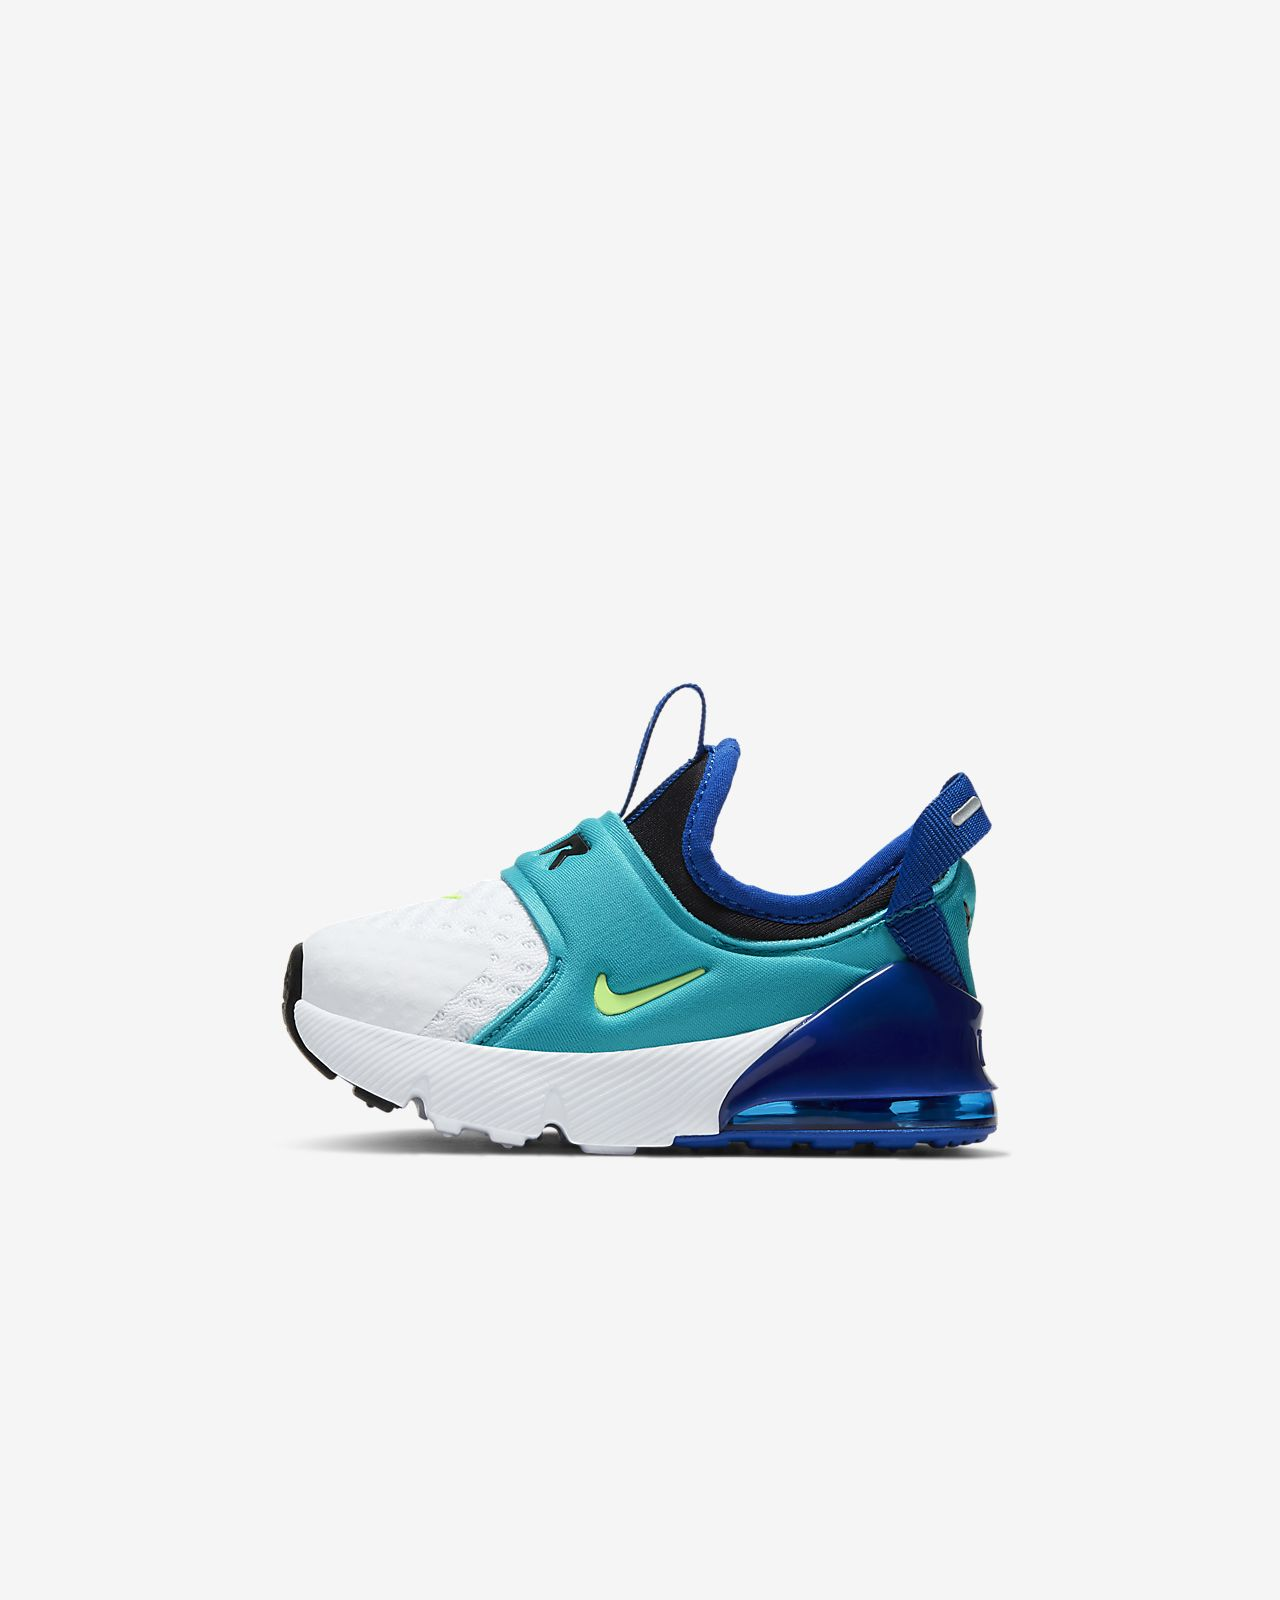 Nike Air Max 270 Extreme Baby/Toddler Shoe